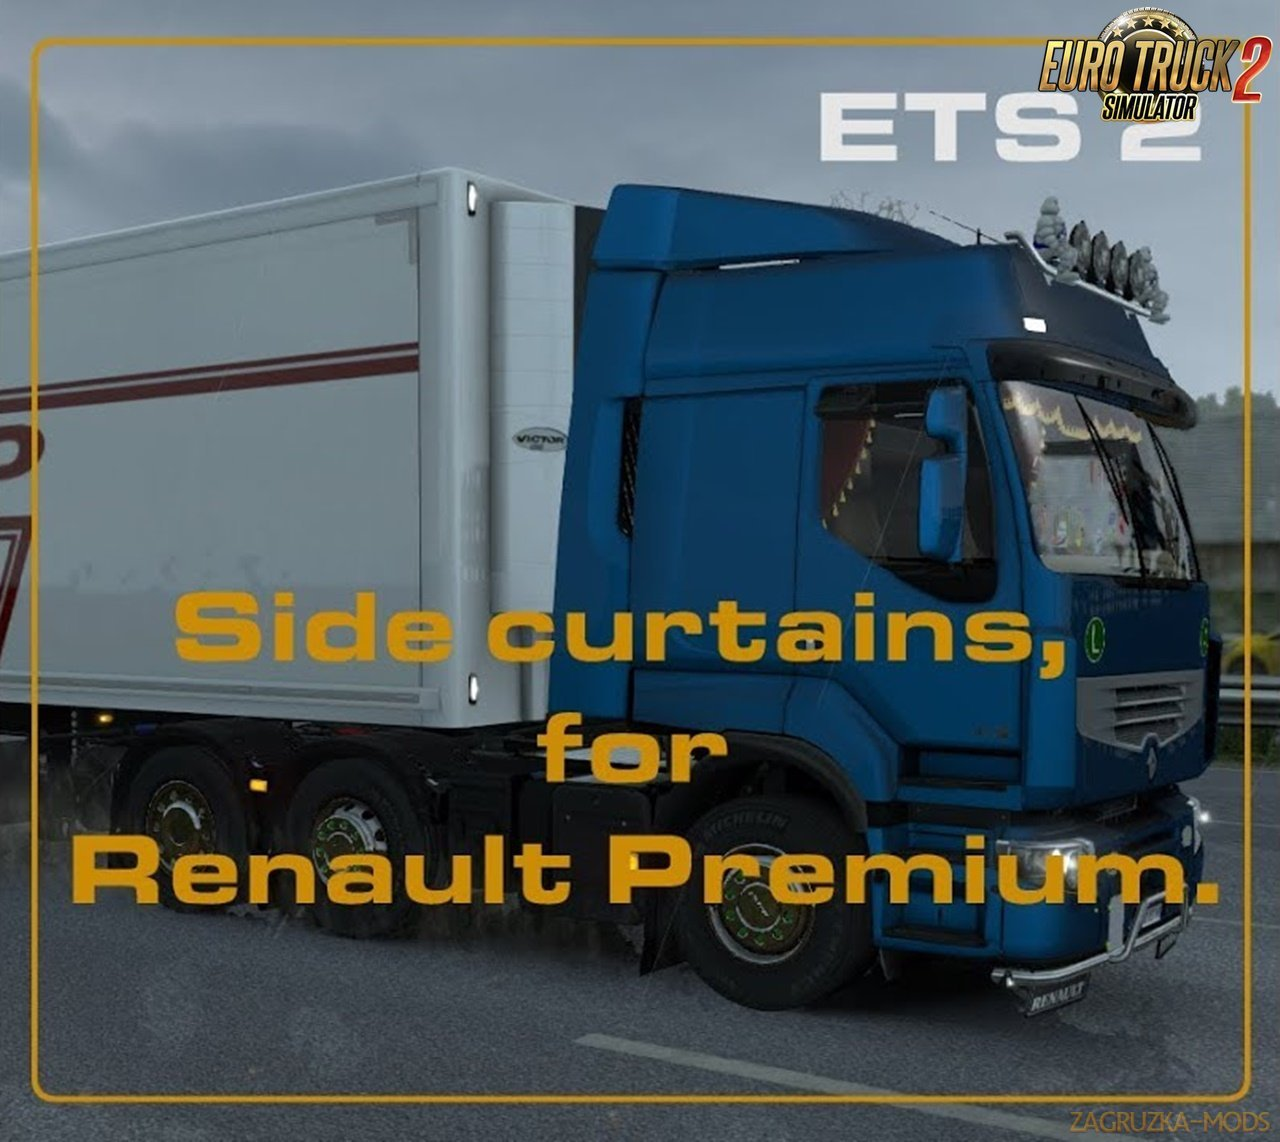 Side curtains for Renault Premium